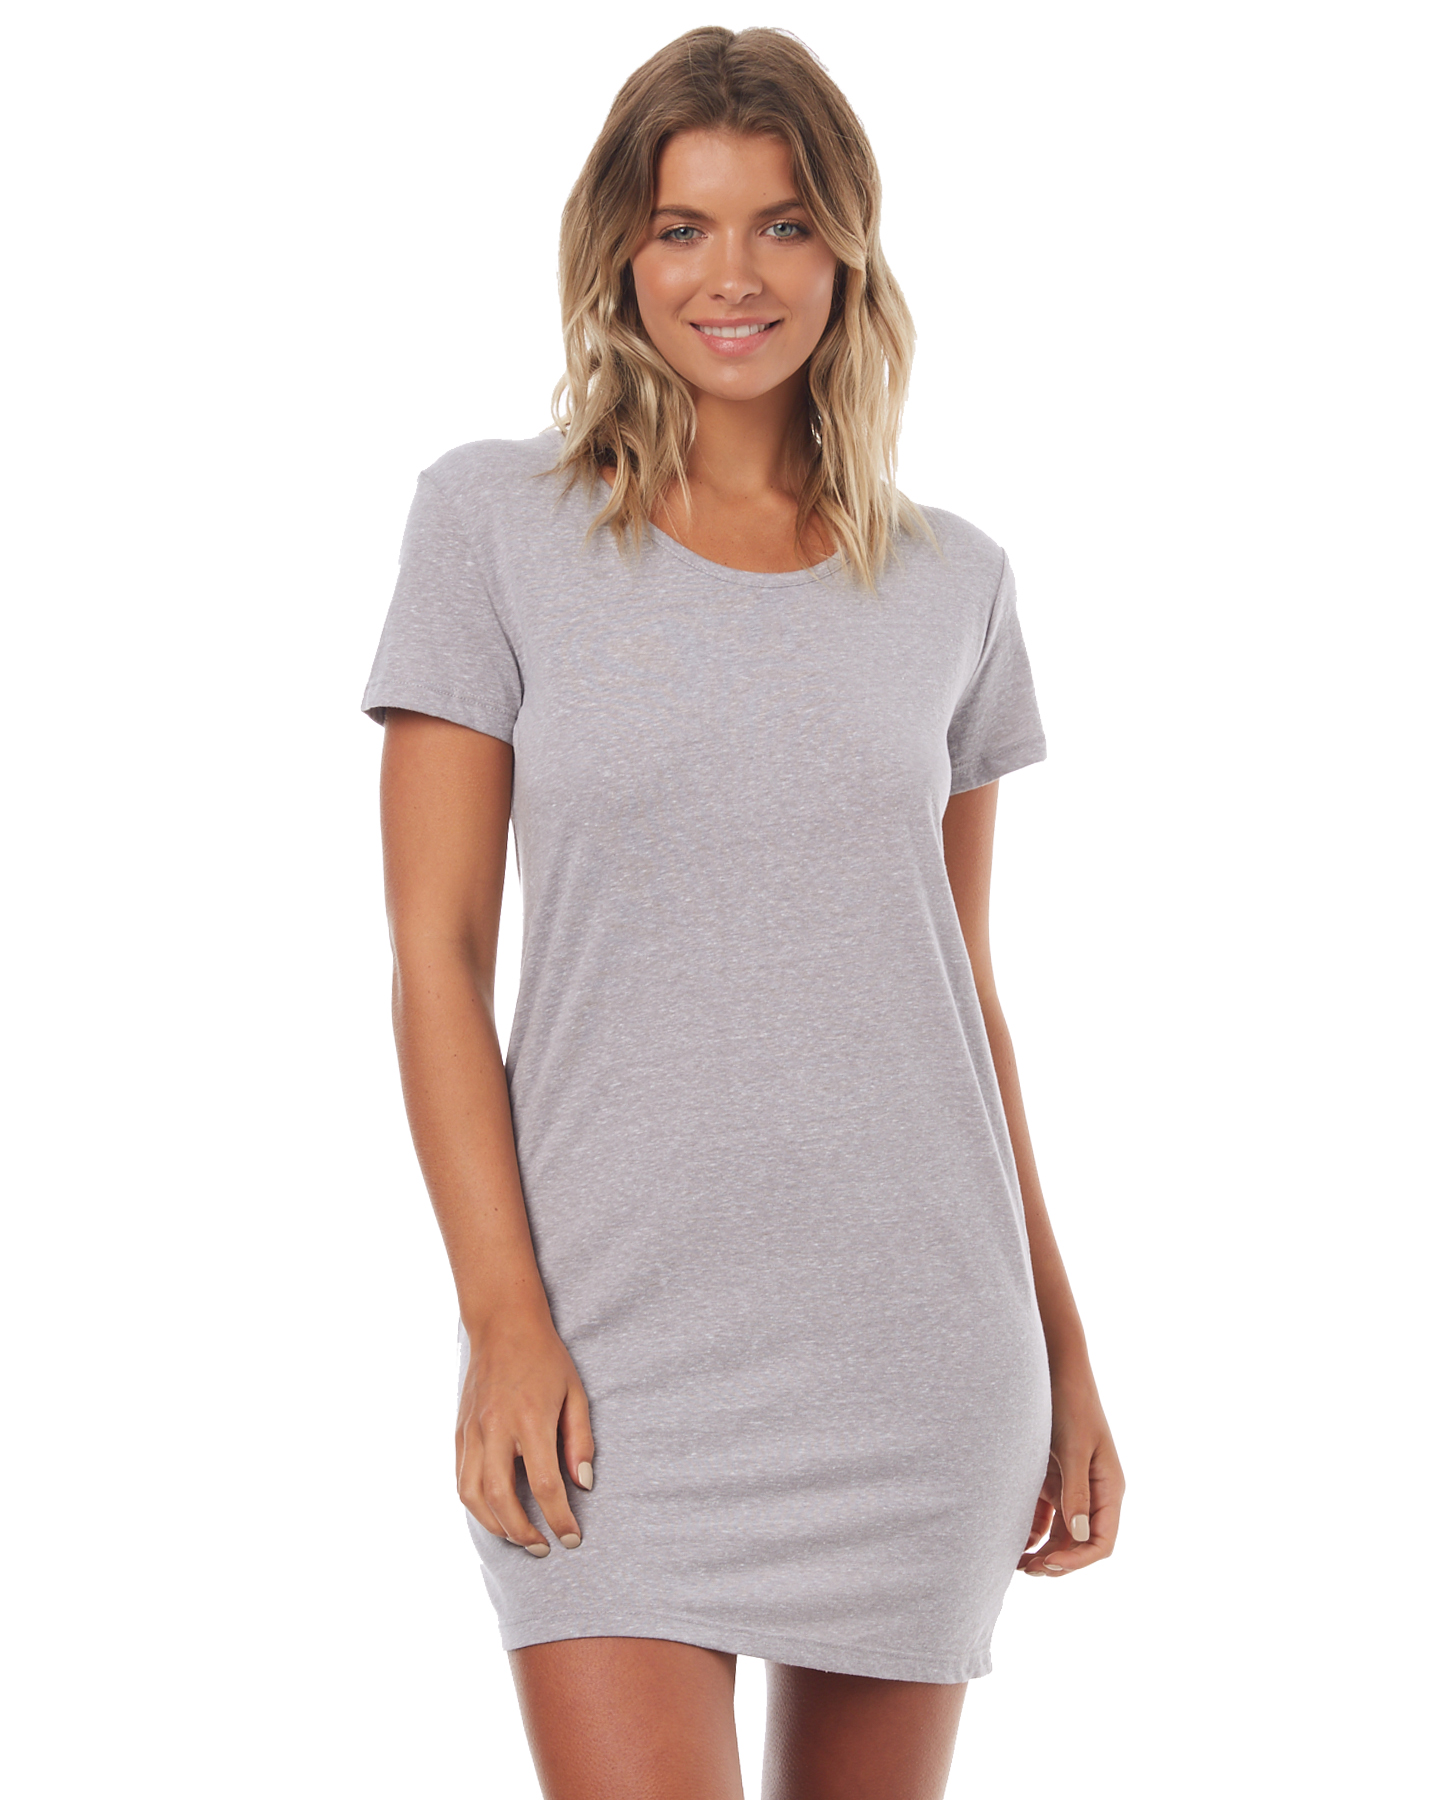 2fc8ceea4cf Roxy Womens Just Simple Solid T Shirt Dress - Heritage Heather ...